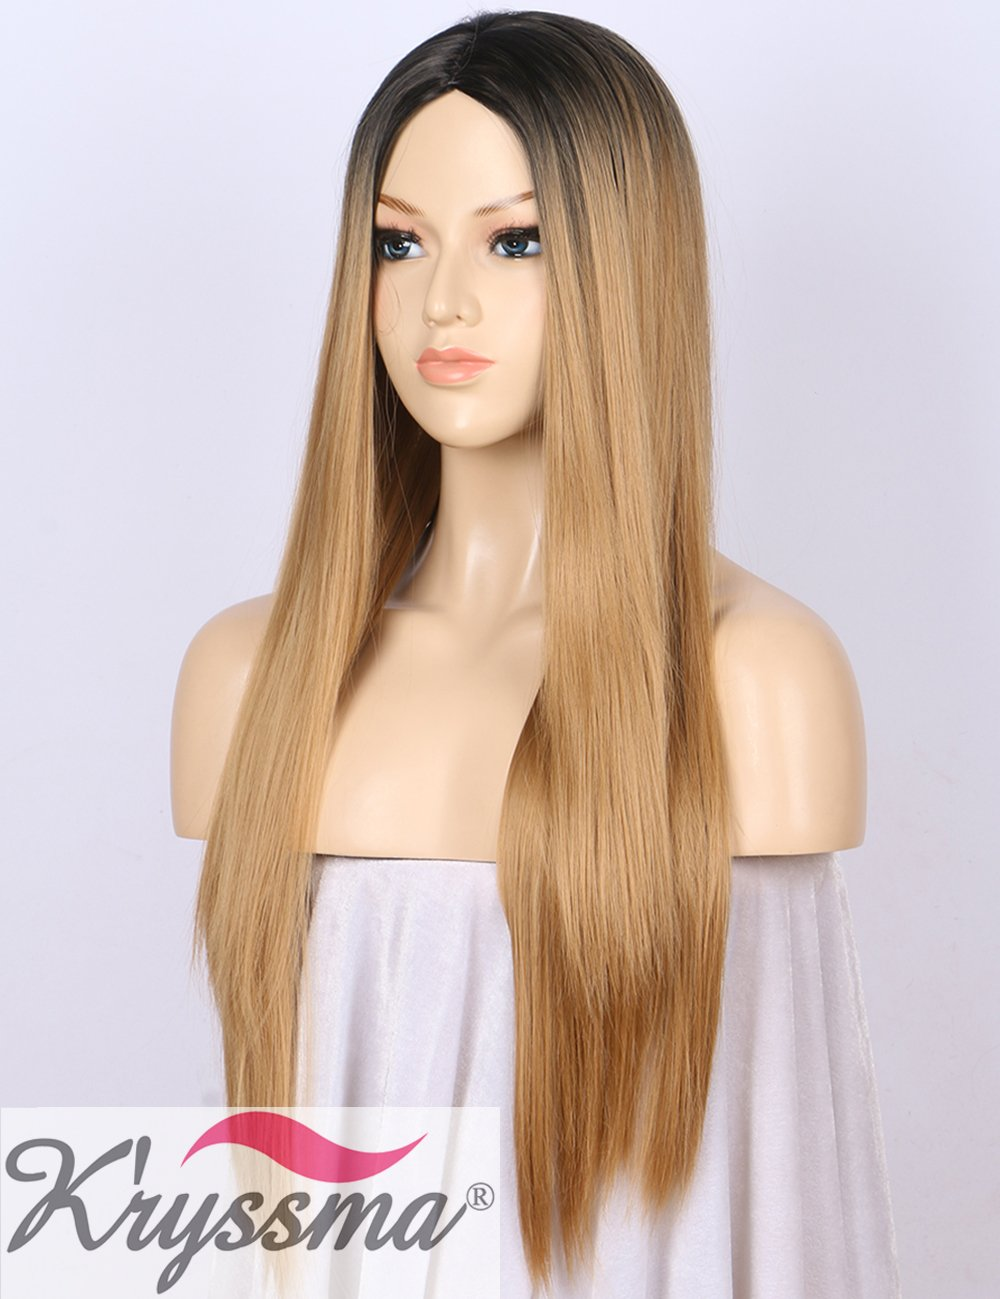 Kryssma Ombre Synthetic Wig M03800 - Full Machine Made Long Straight Blonde Wig Black